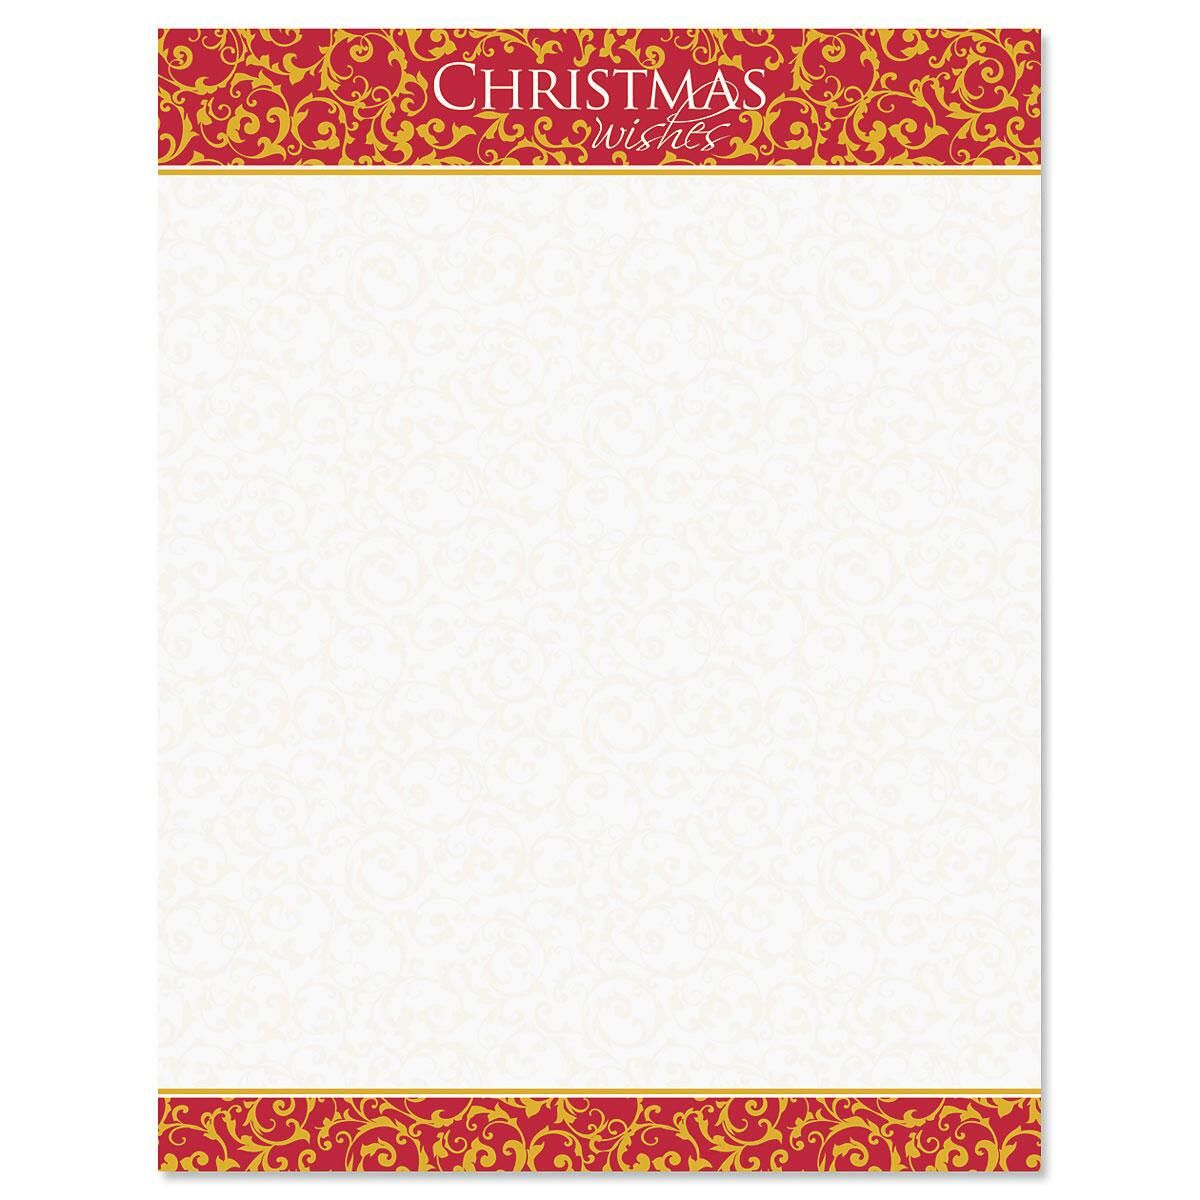 Christmas Wishes Letter Papers